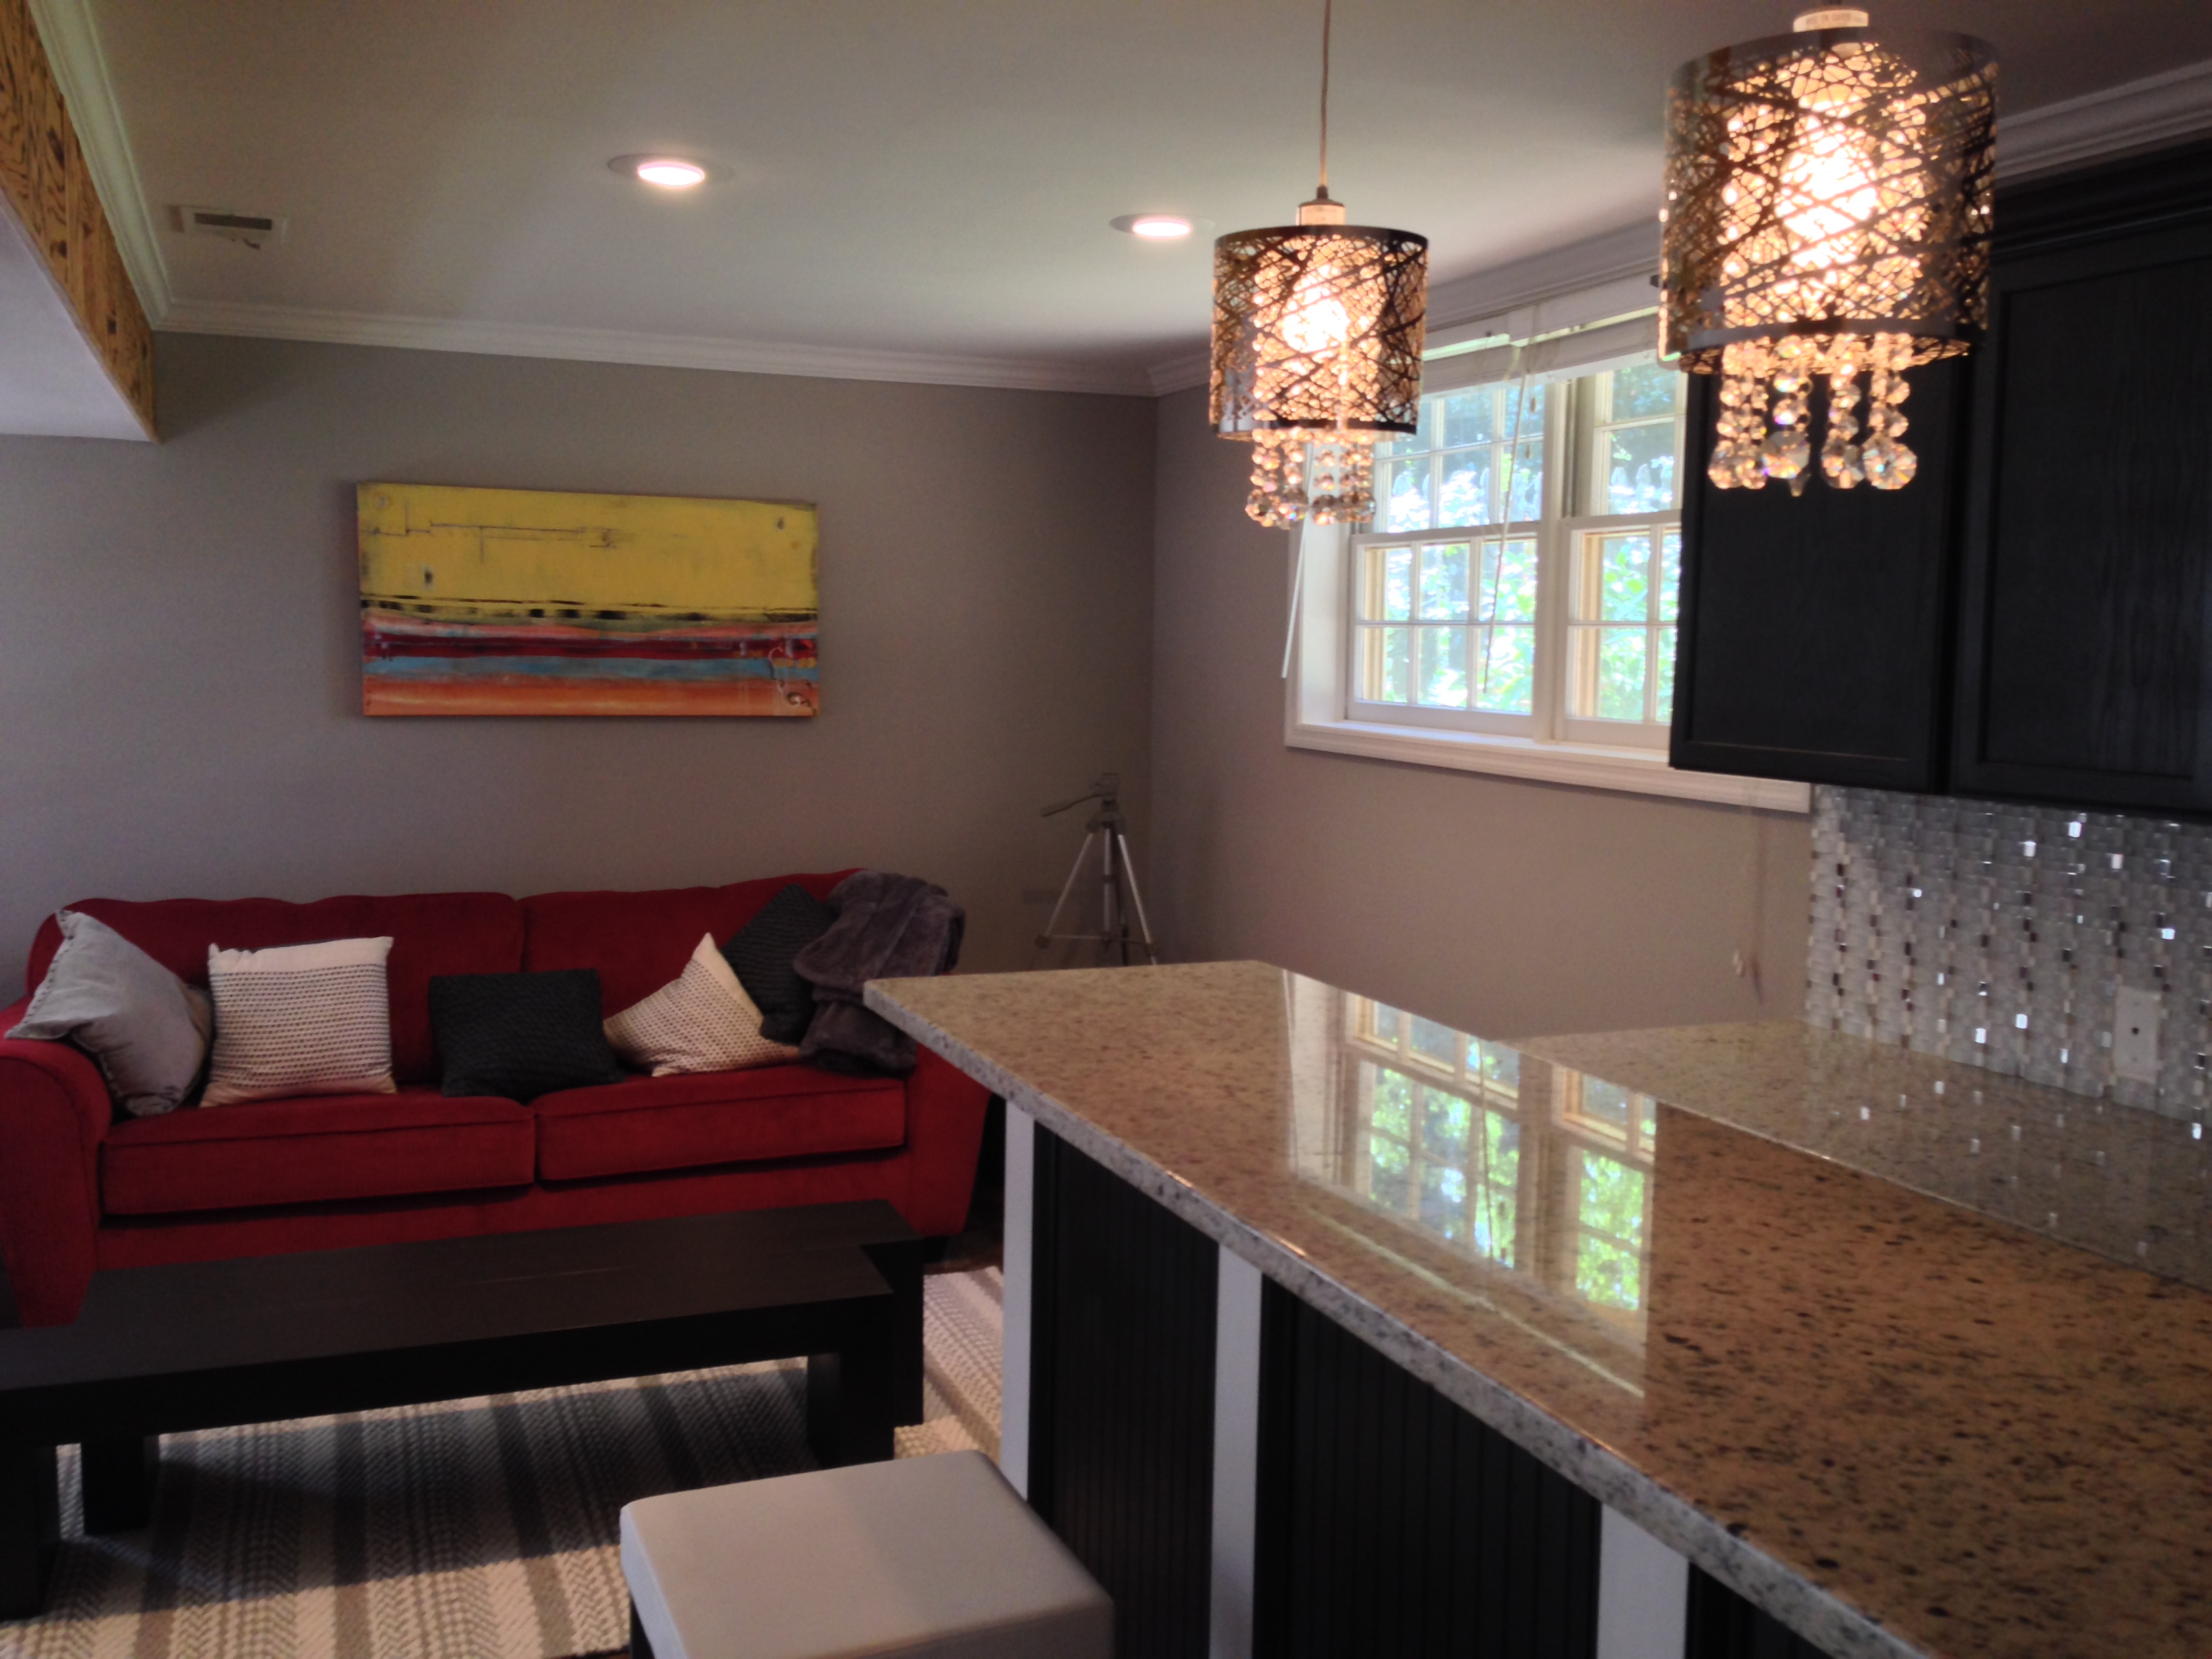 Home Remodeling Marietta Ga Style Basement Finishing  Atlanta Curb Appeal